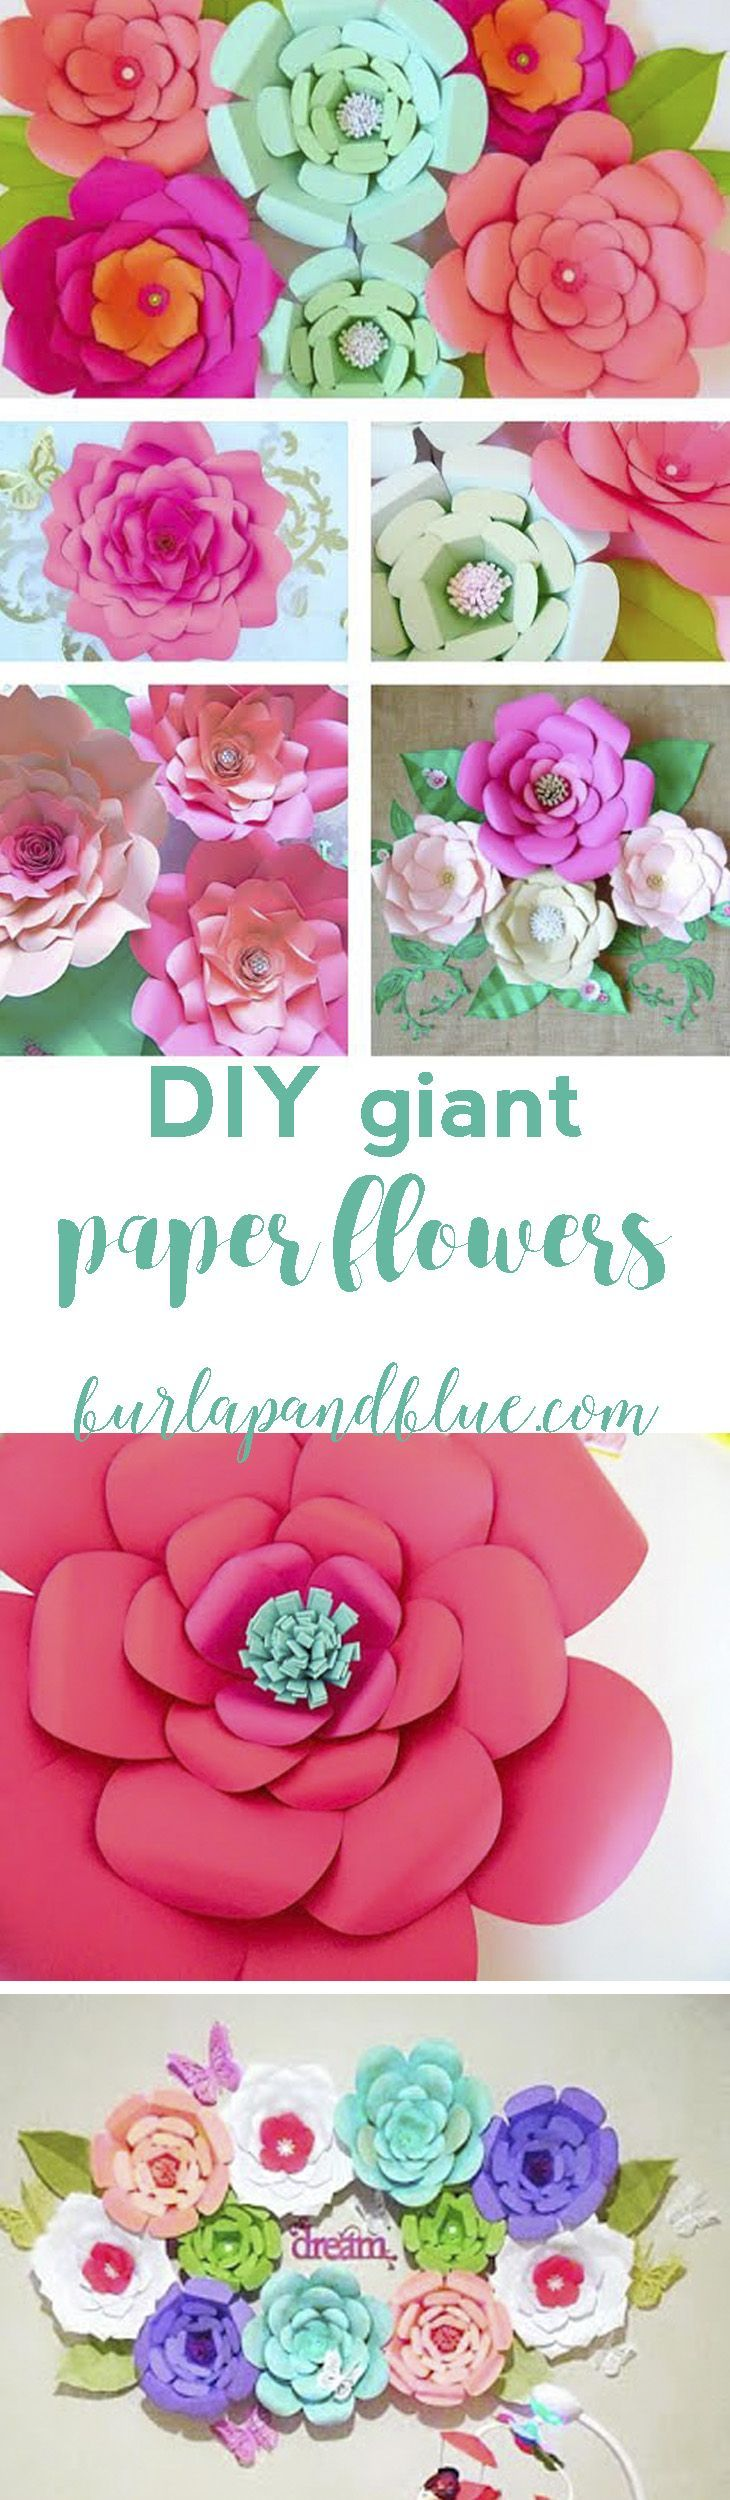 1628 best diy flowers images on pinterest giant flowers paper how to make paper flowers mightylinksfo